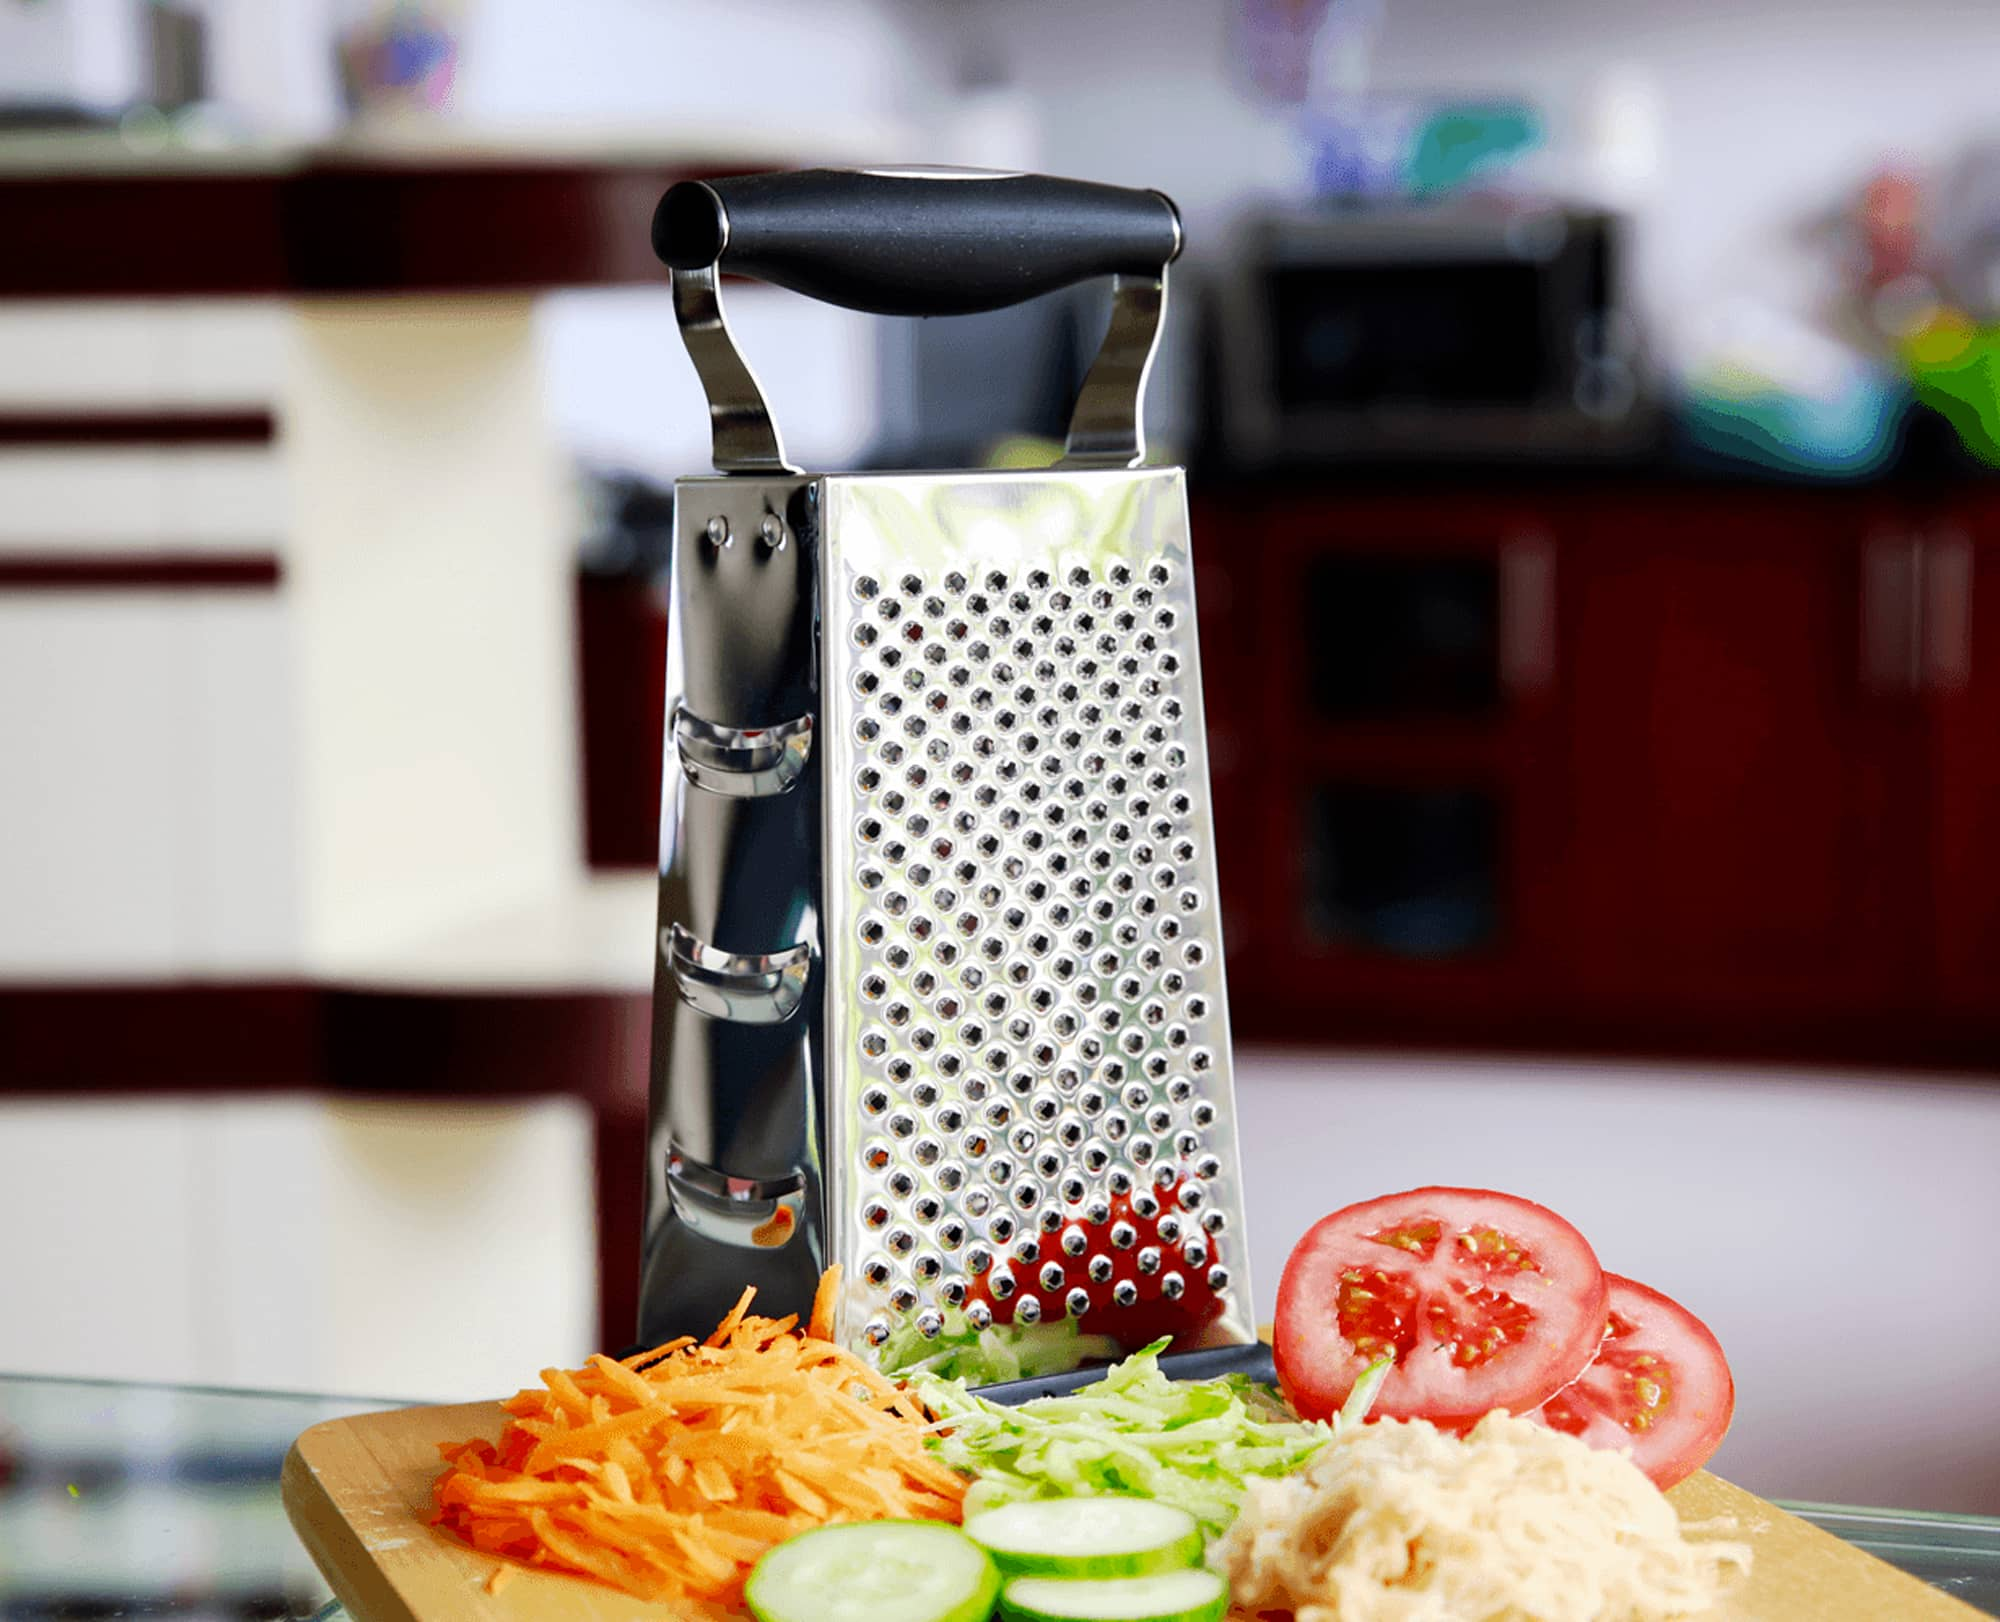 Grated Vegetables with Benchsuch 4 side grater box in the kitchen